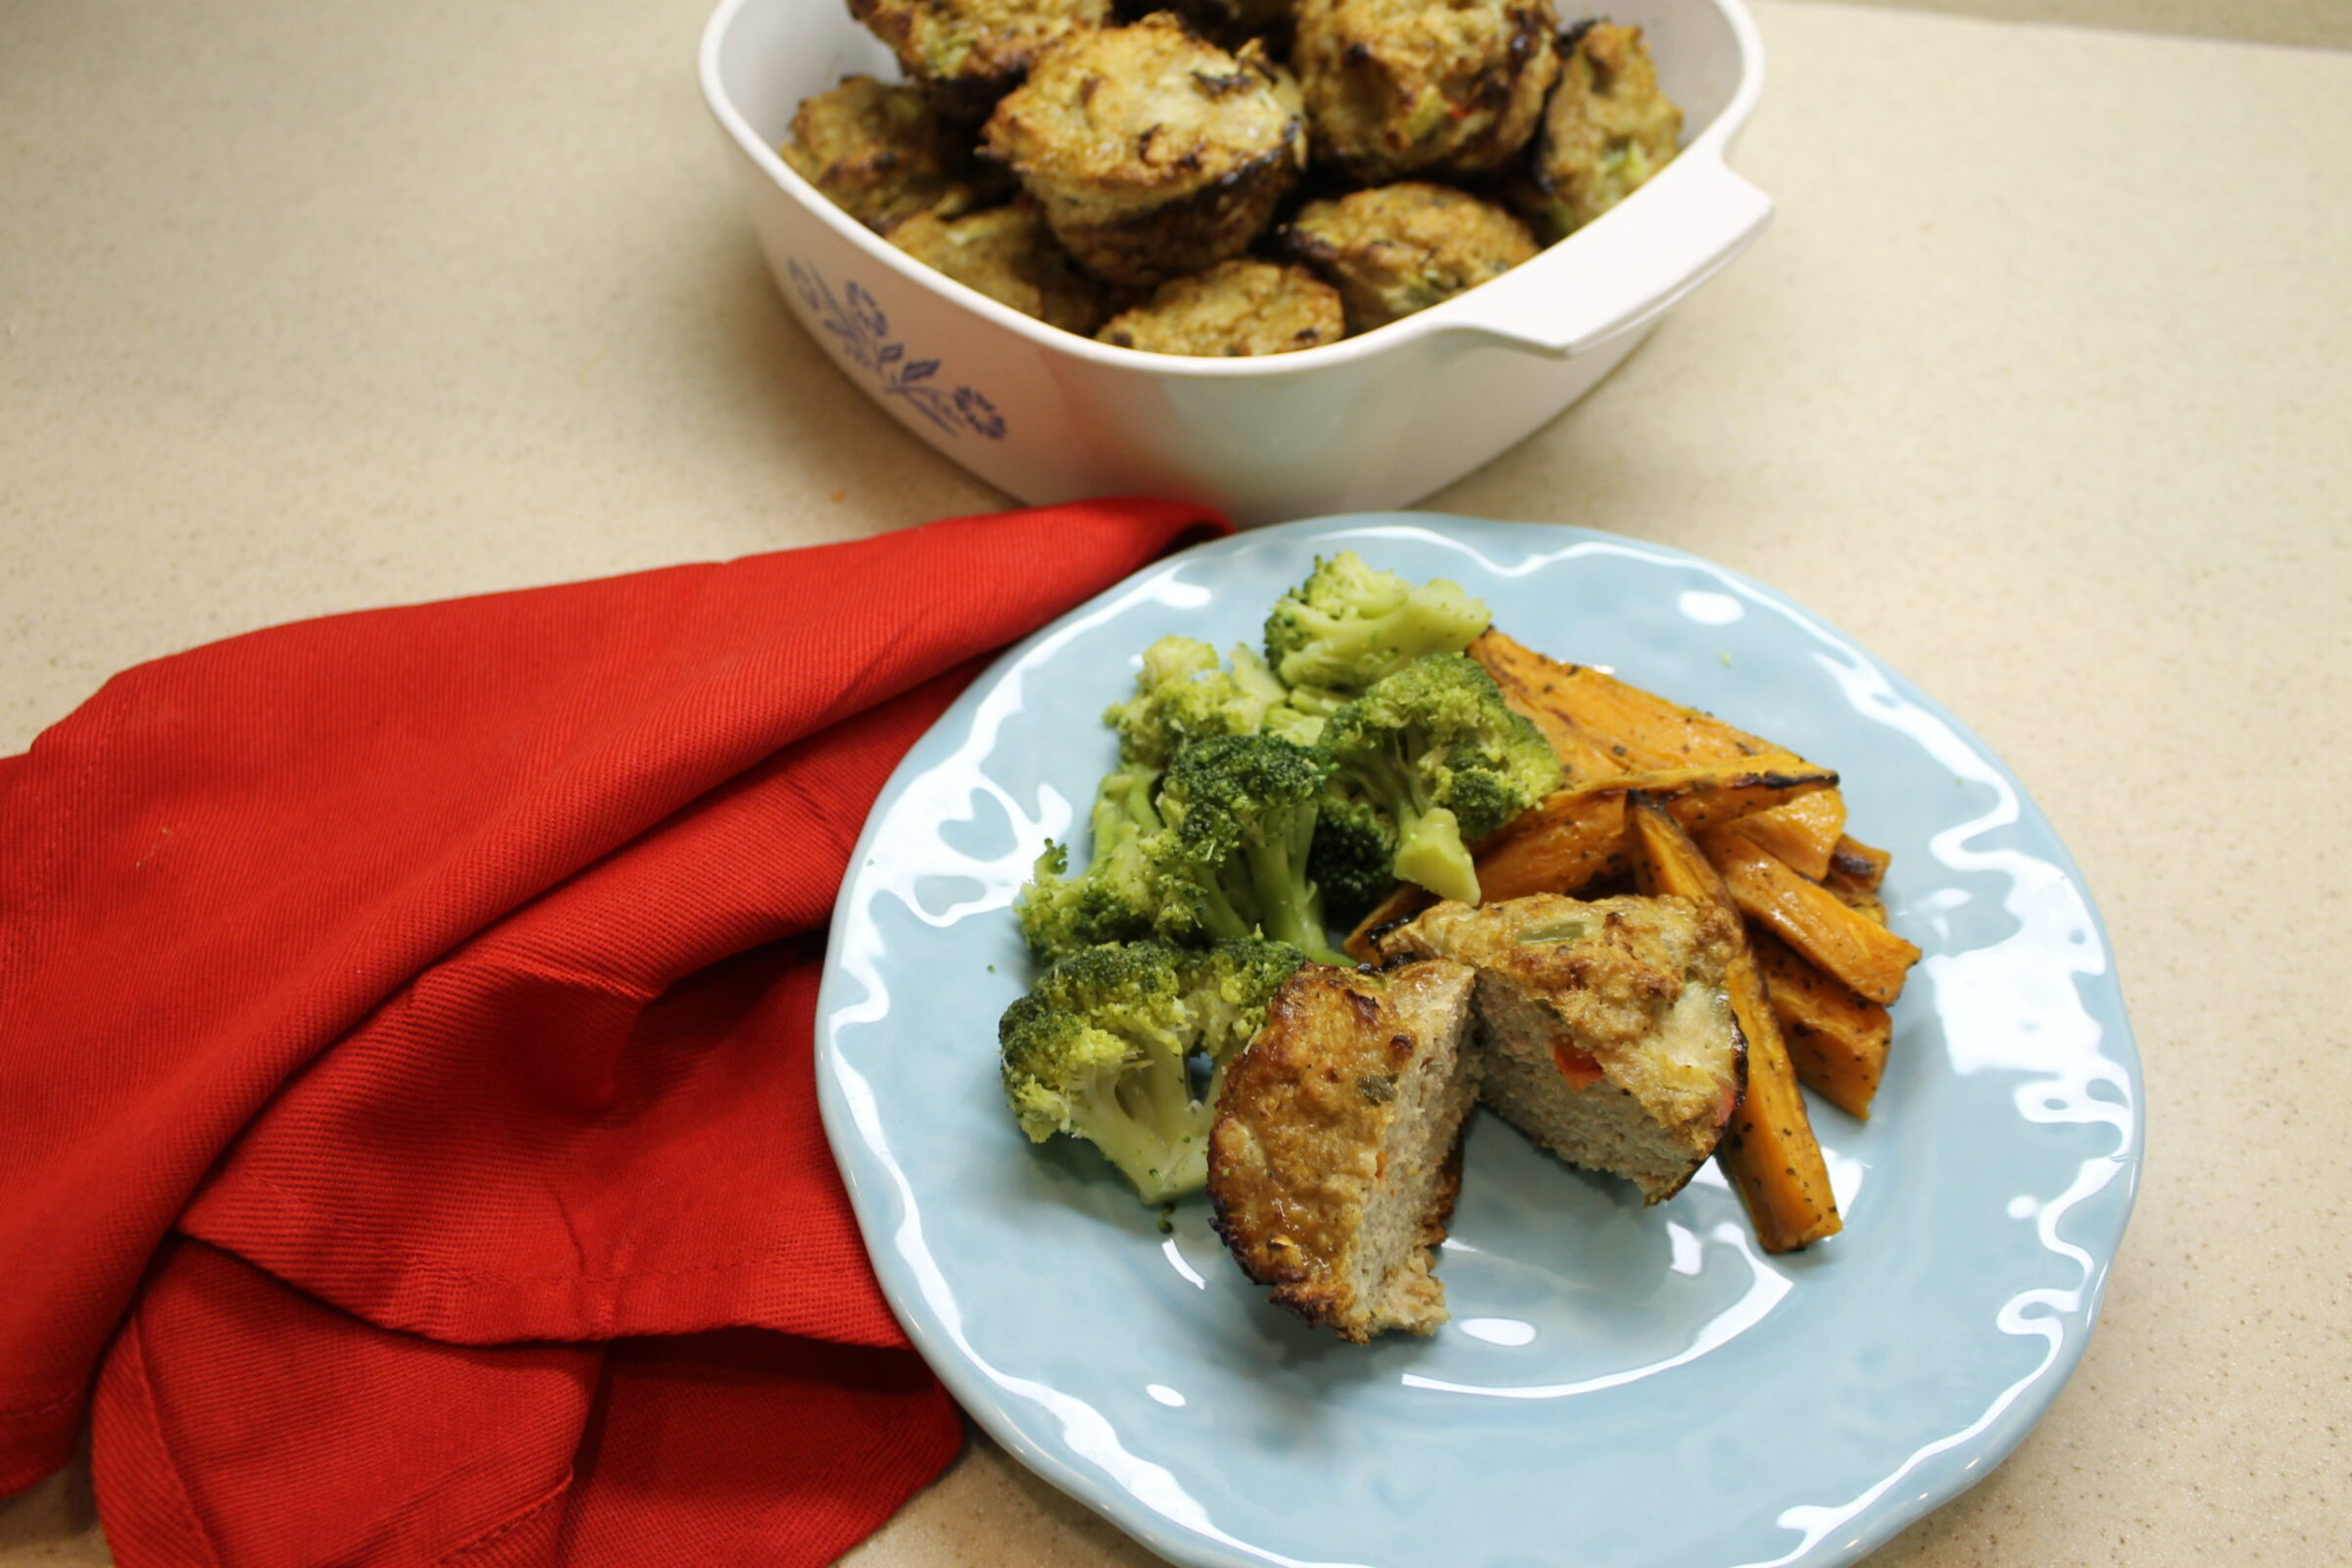 sweet potato fries and steamed broccoli